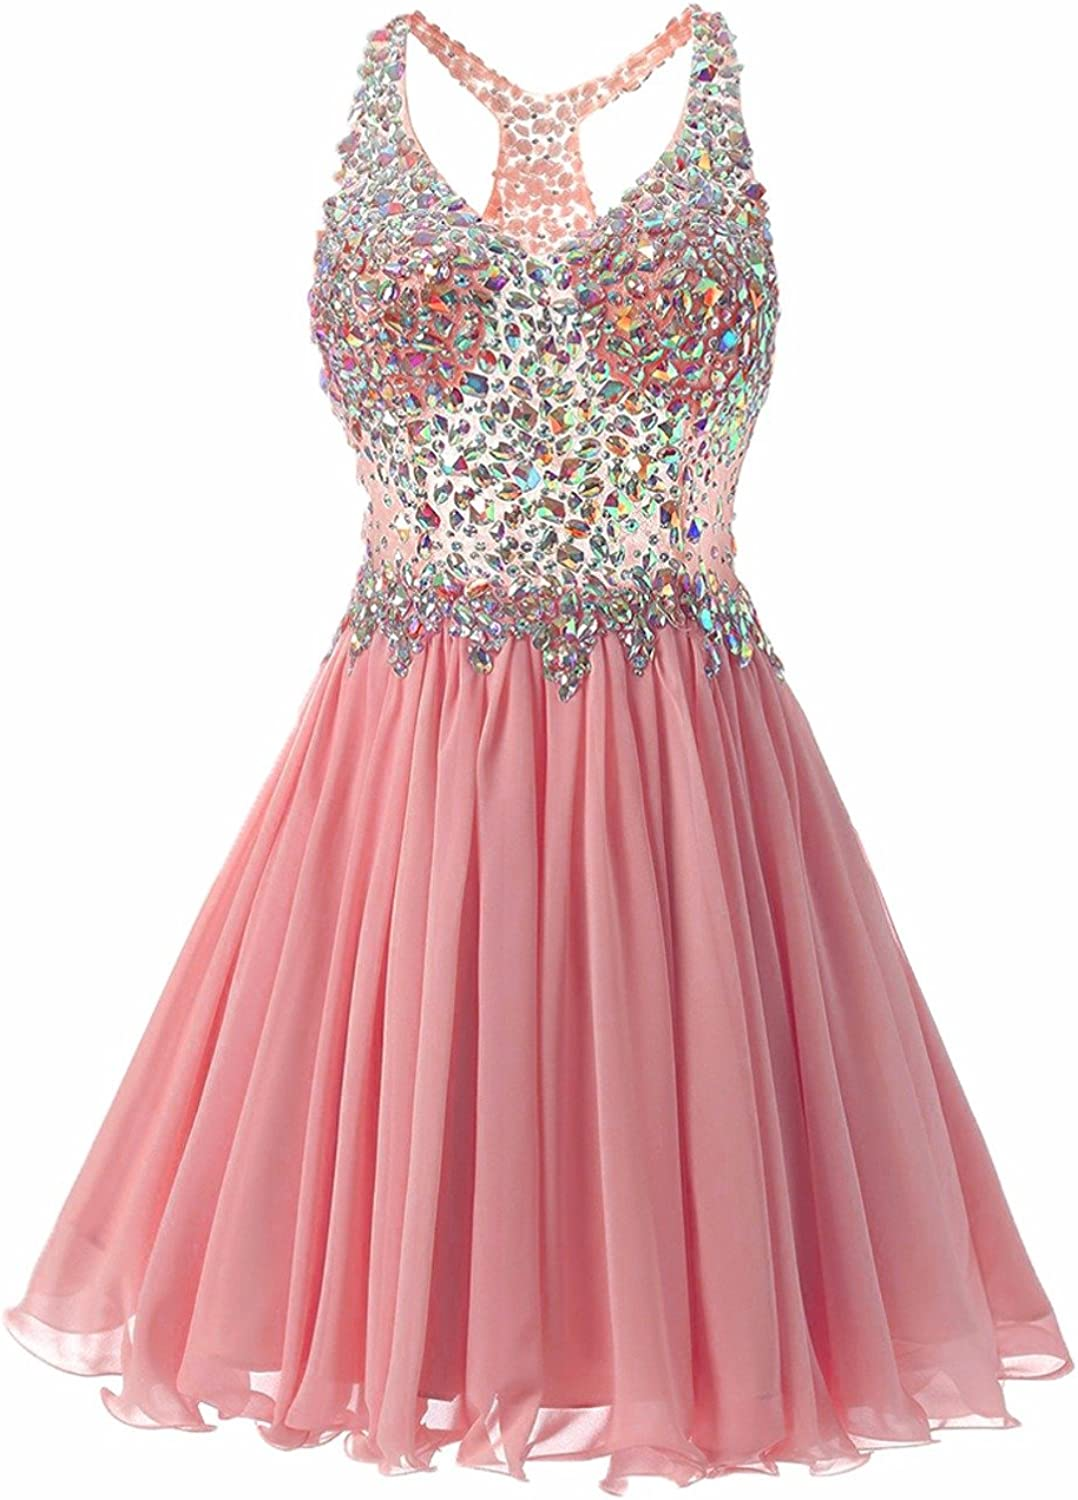 Aishanglina Women's DoubleV Prom Dresses Bridesmaid Guest Gowns for Prom Wedding Party